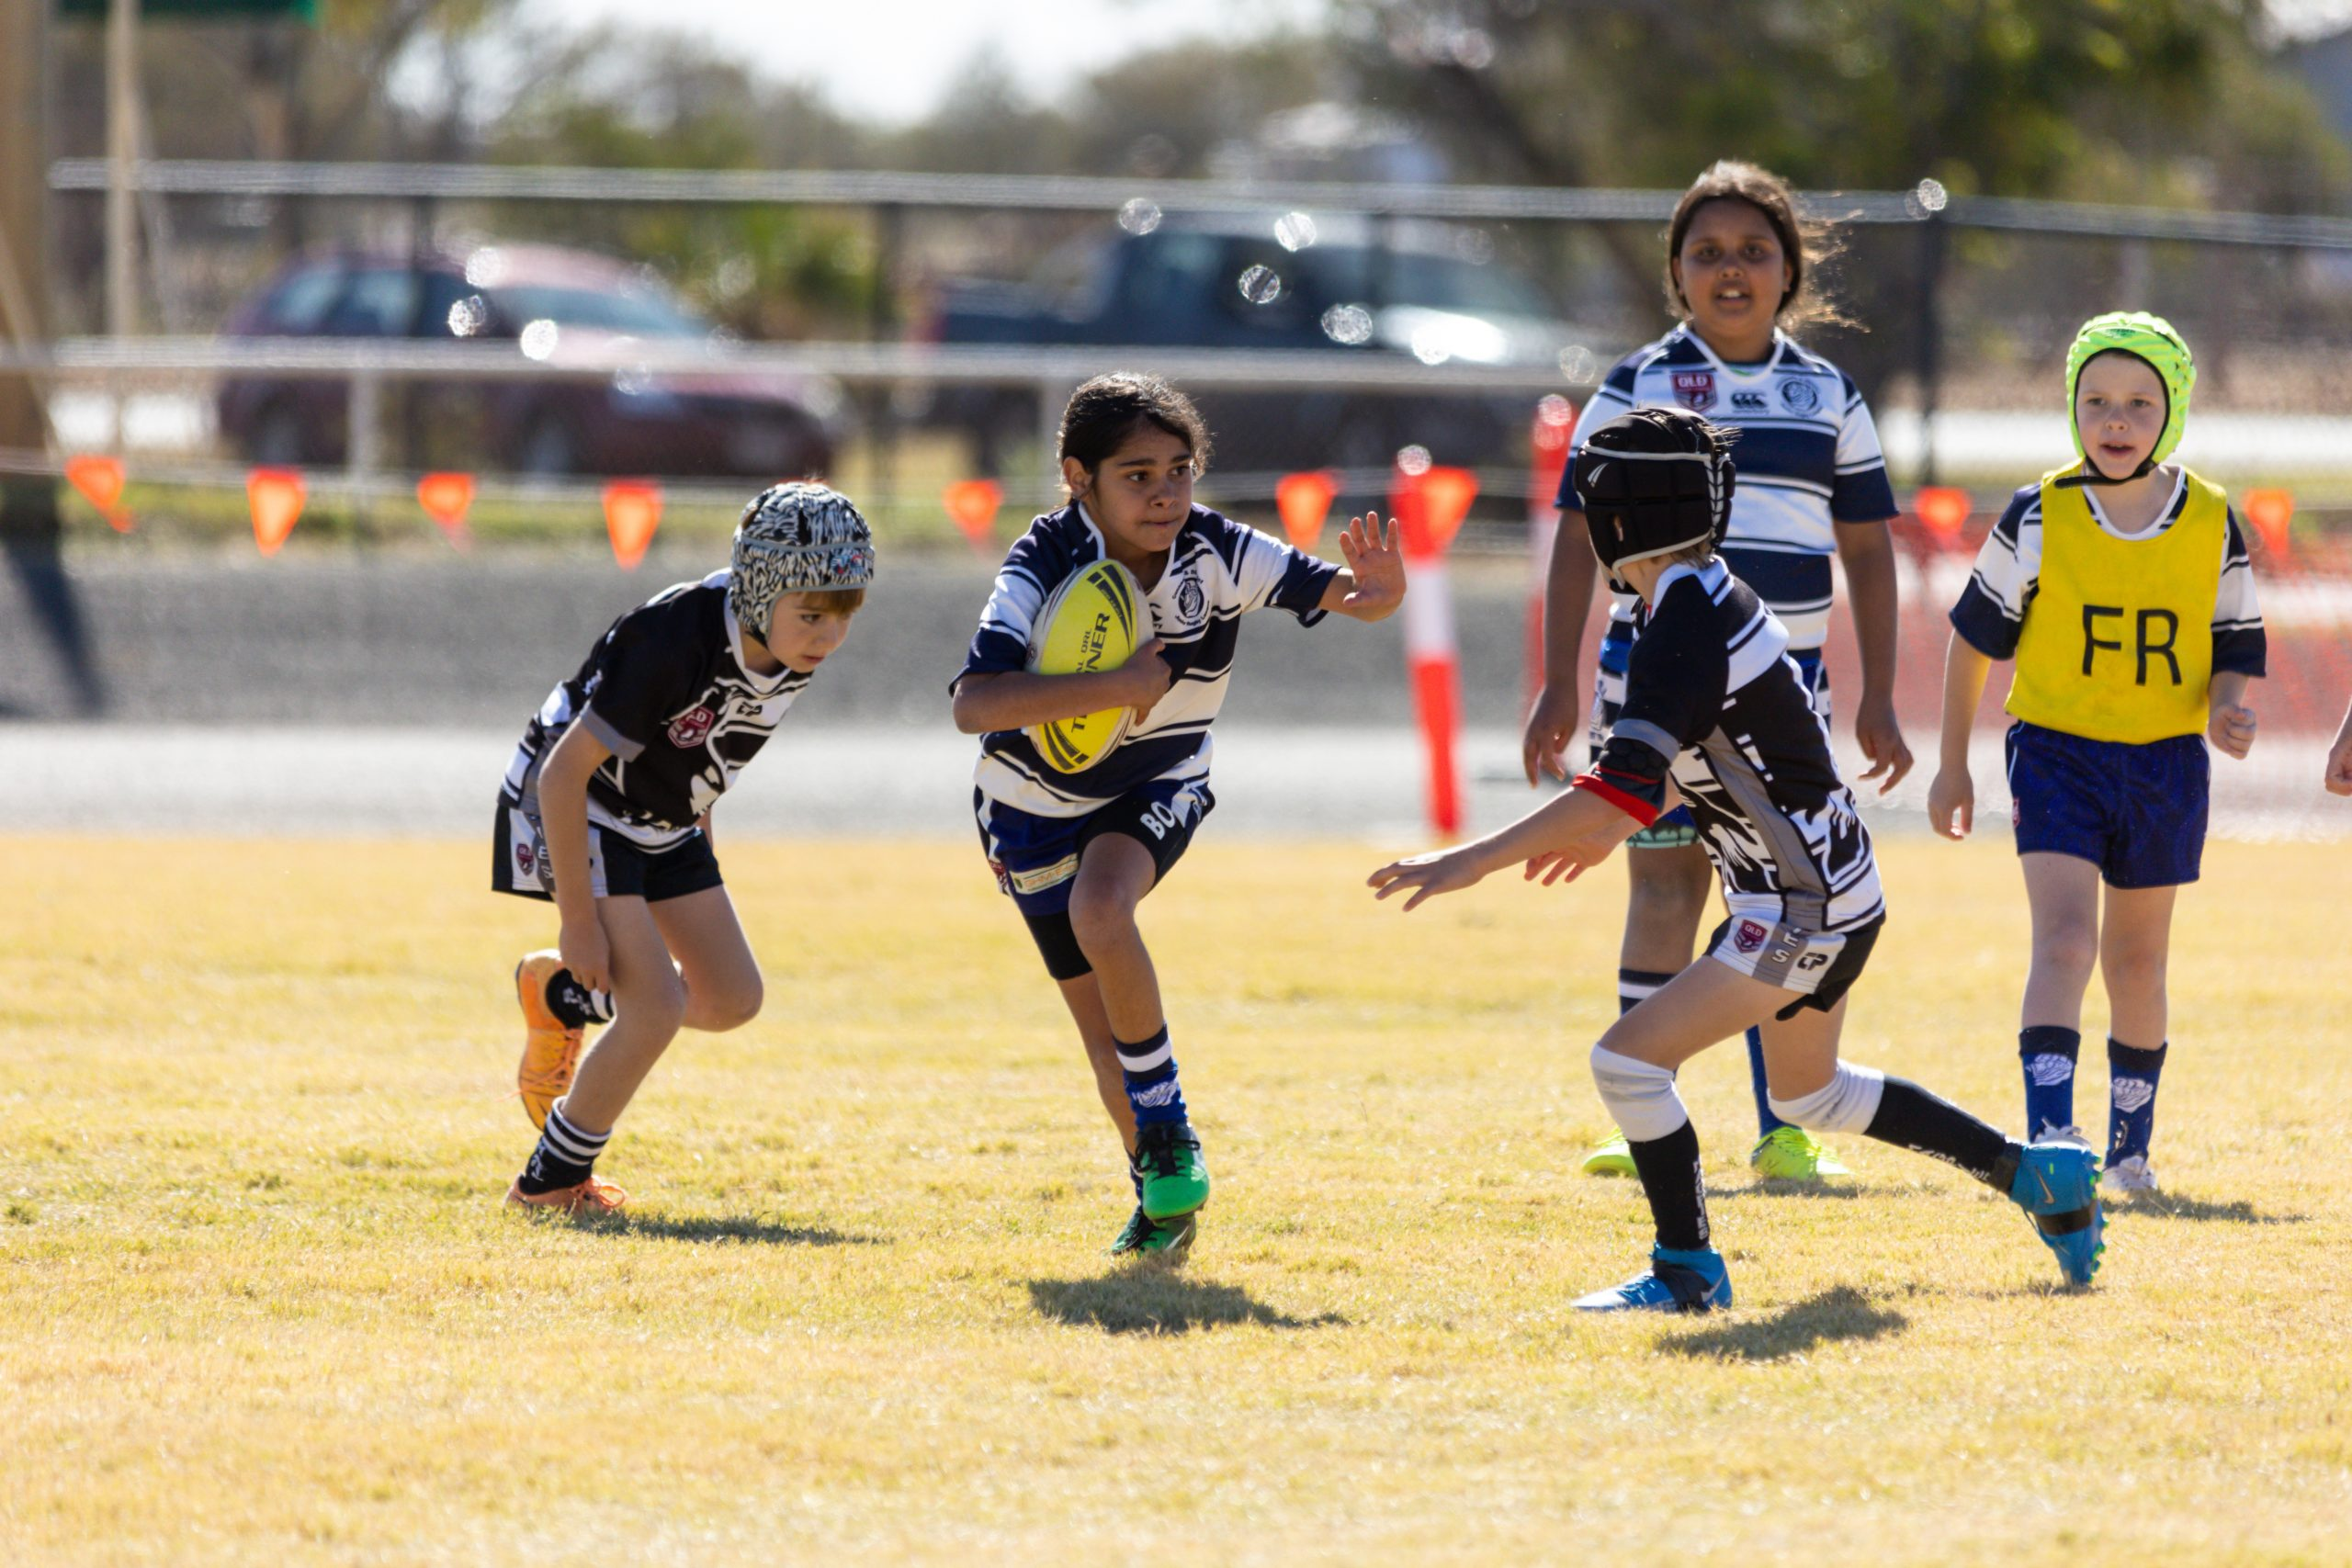 Queensland records growth in community participation